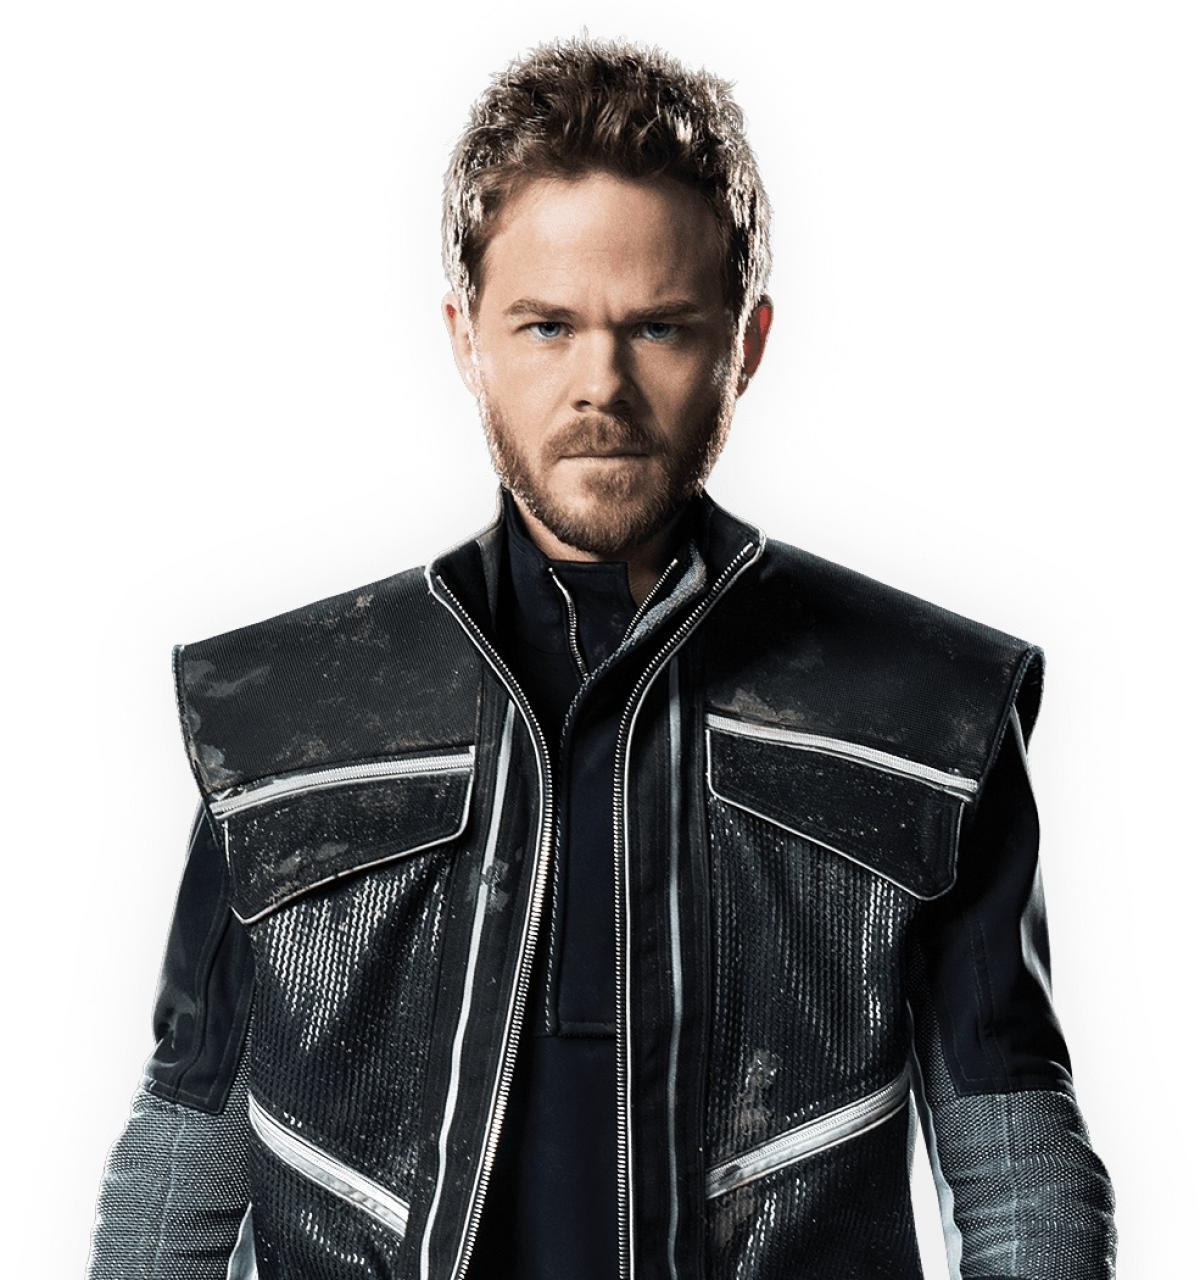 iceman x men days of future past - photo #6